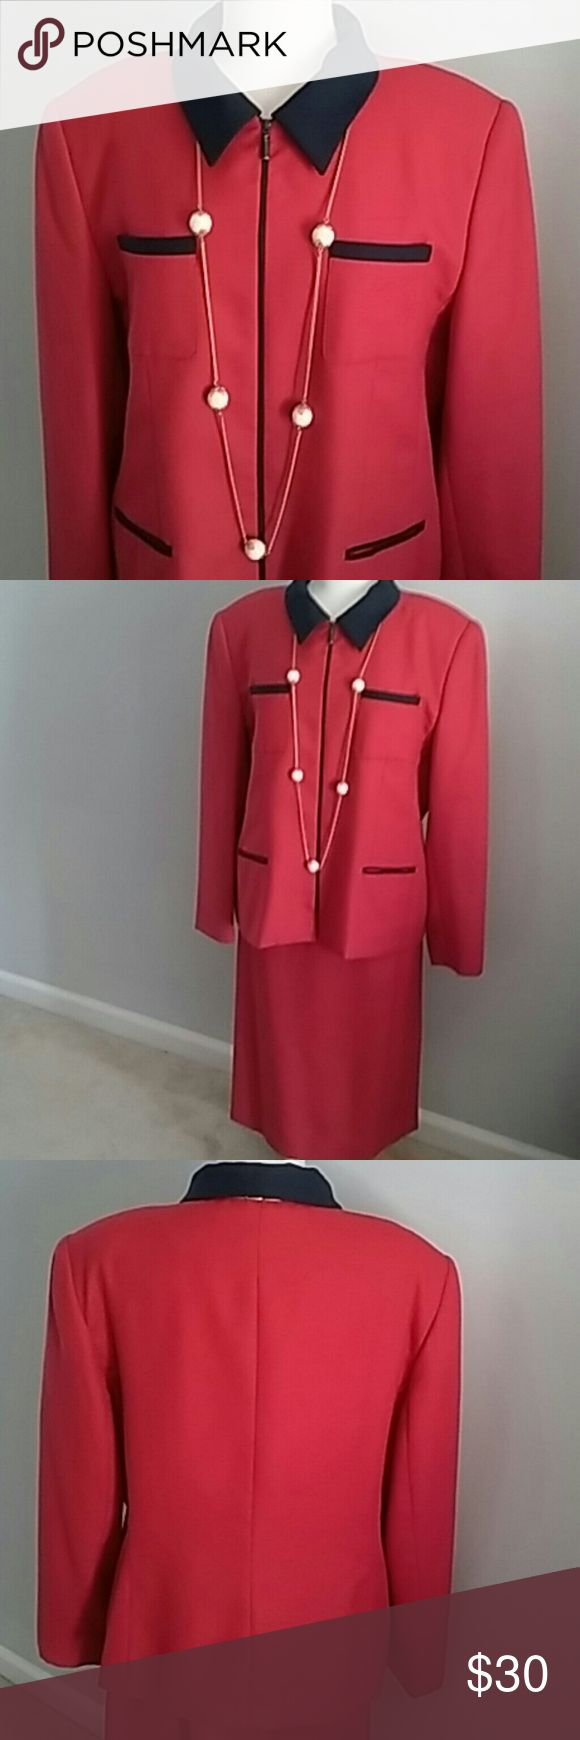 MORGAN MILLER SKIRT SUIT IN BOLD RED AND NAVY 18 MORGAN MILLER BOLD RED AND NAVY SKIRT SUIT. ZIP UP JACKET WITH 4 NAVY TRIMMED POCKETS. THE SKIRT HAS A BACK BUTTON AND ZIPPER. BOTH ARE FULLY LINED WITH A SILKY FEEL POLYESTER AND THE SHELLS ARE A WOOL POLYESTER BLEND.  THE SKIRT HAS UNTRIMMED POCKETS. SIZE 18. SHARP AND POLISHED LOOK. Morgan Miller Jackets & Coats